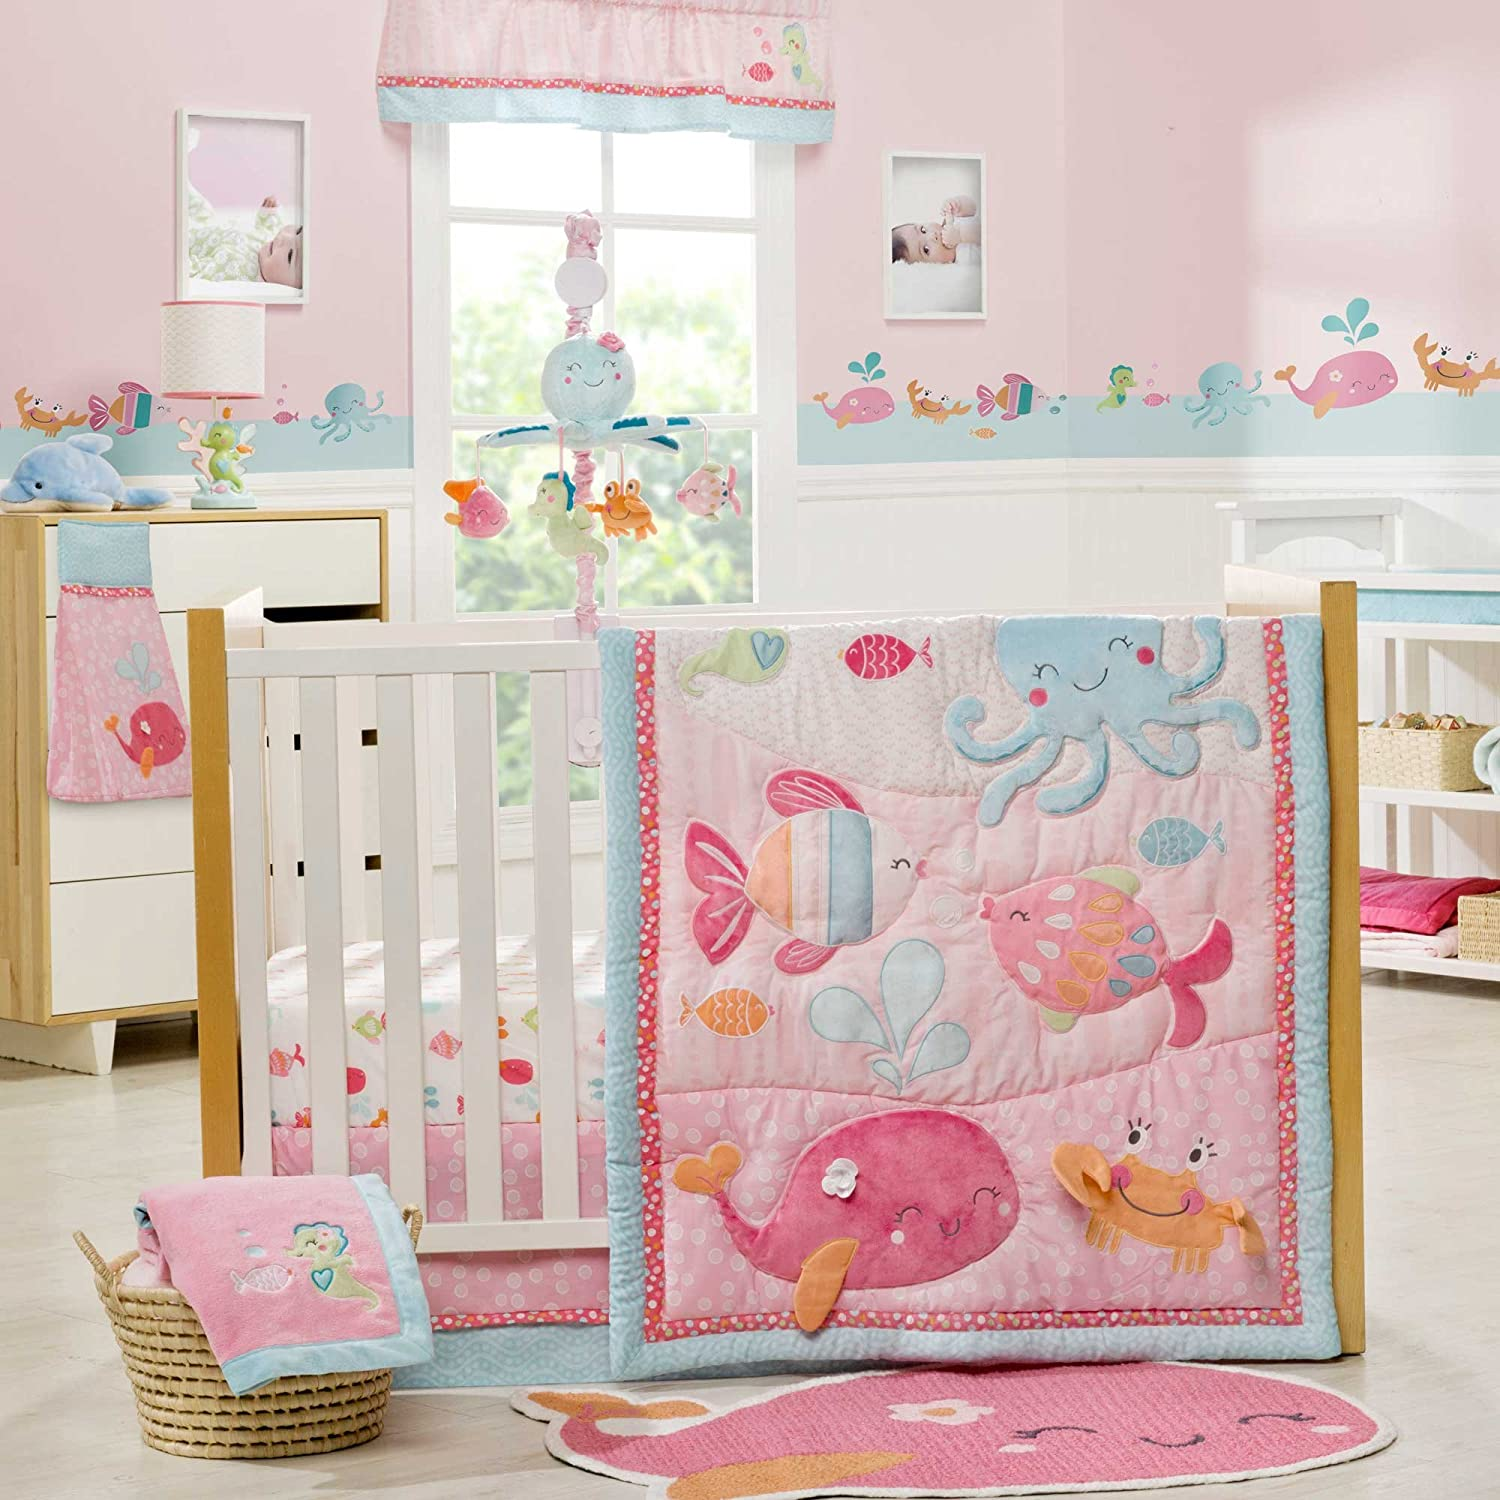 Carters Under the Sea Crib Bedding